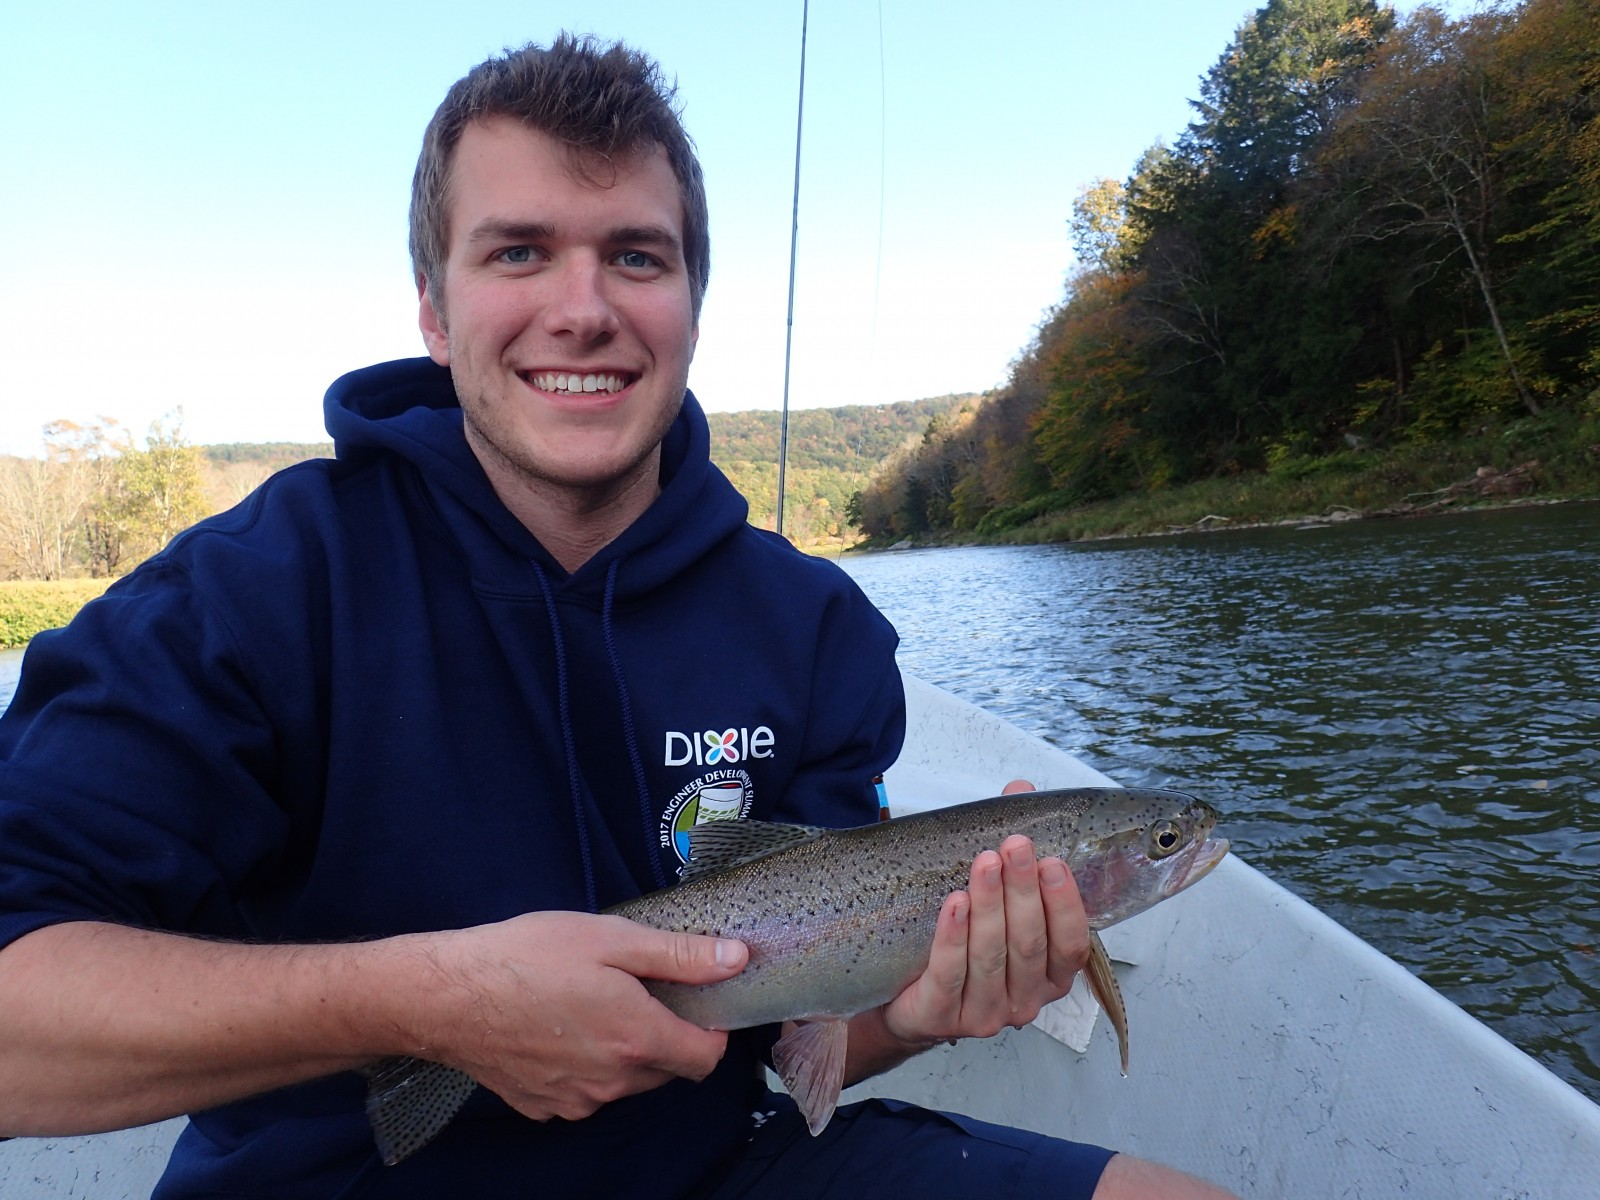 guided fly fishing trips on the delaware river for wild trout with jesse filingo of filingo fly fishing for rainbow trout on the delaware river.